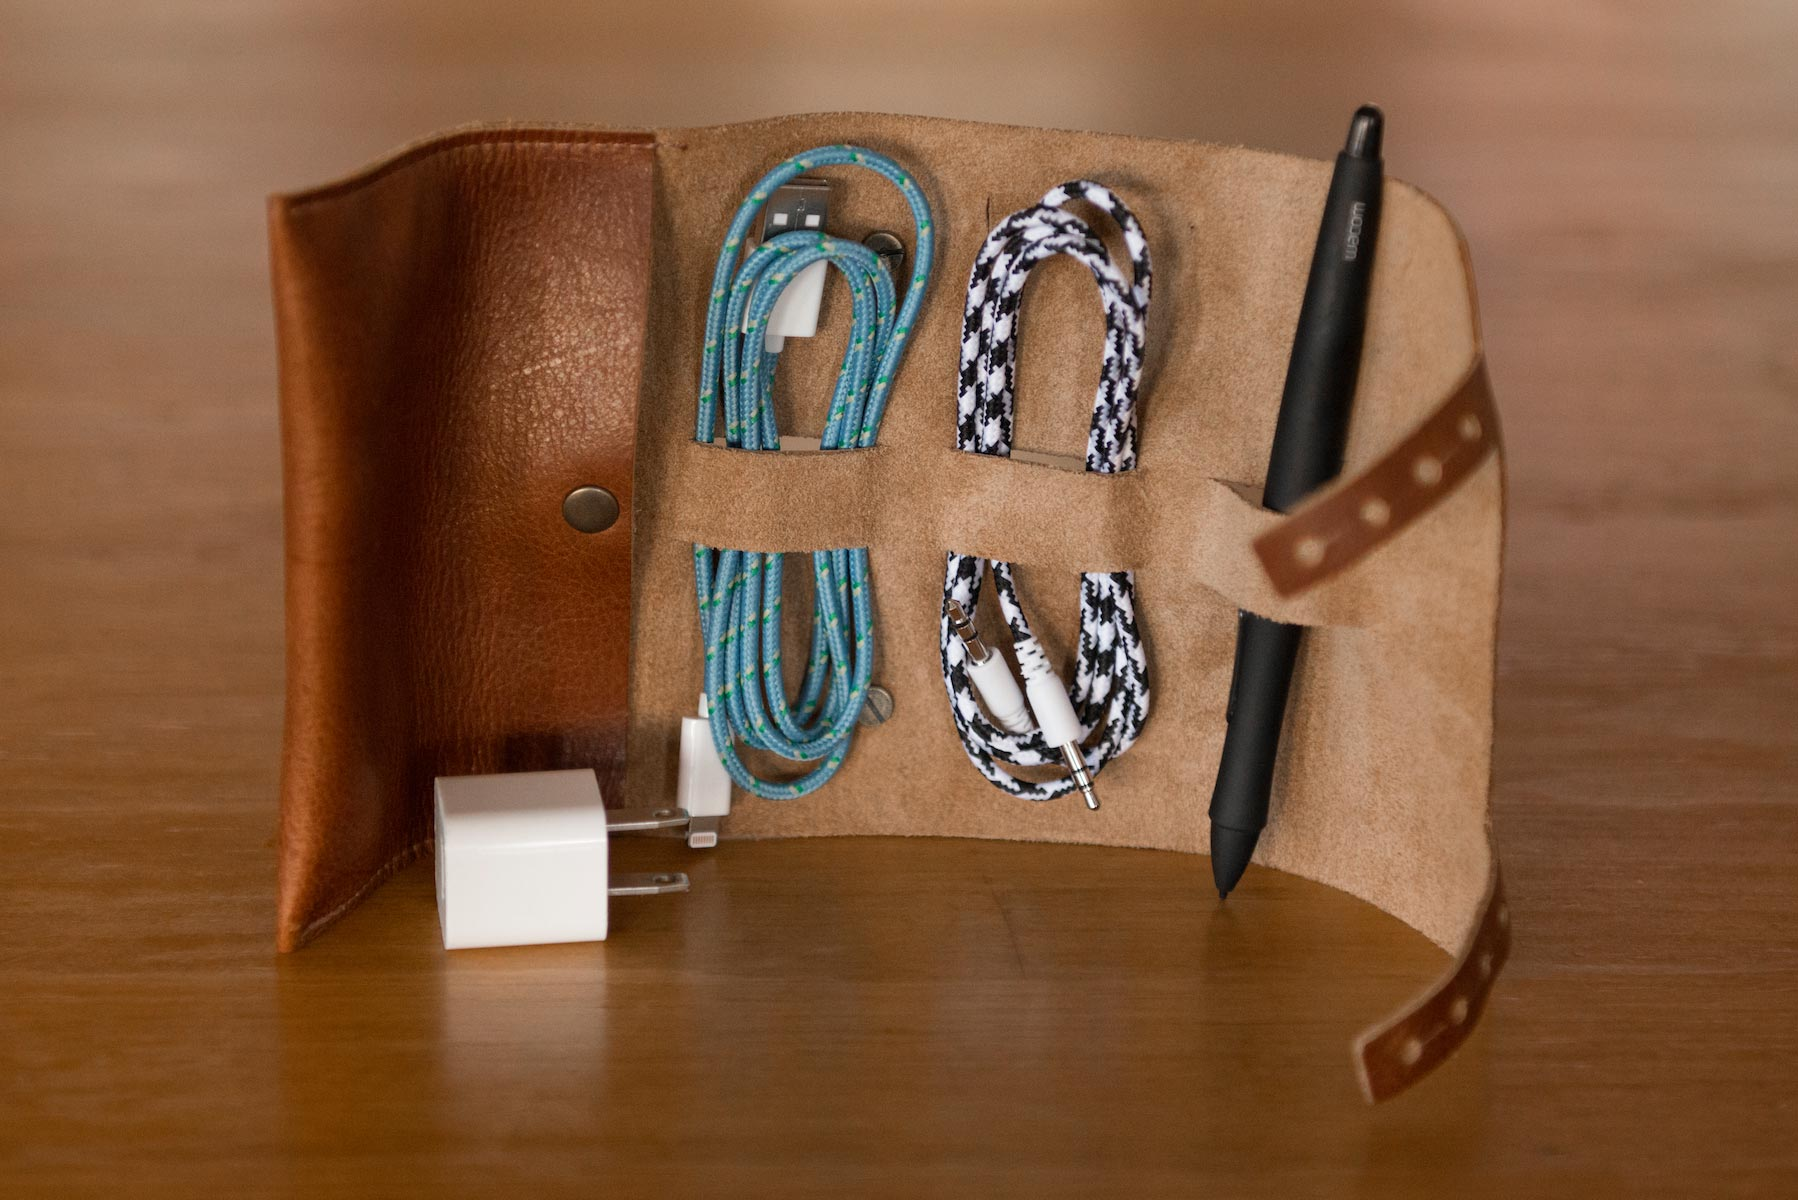 Cordito (Leather Cord Organizer)